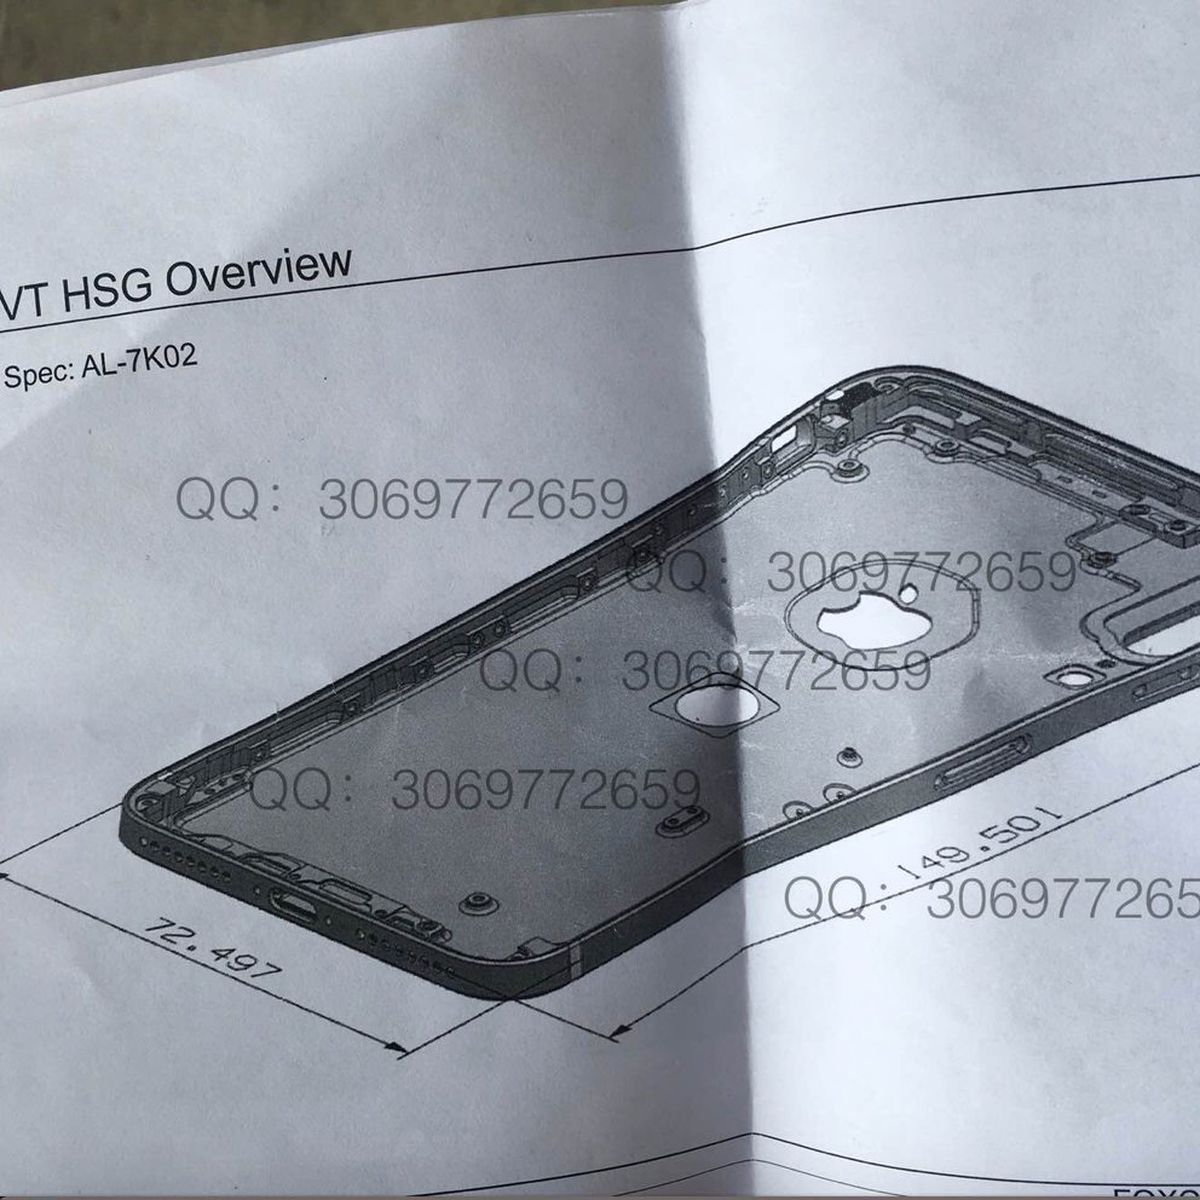 Another Iphone 8 Design Schematic Shows Vertical Dual Camera And Touch Id On Back Of Aluminum Casing Macrumors